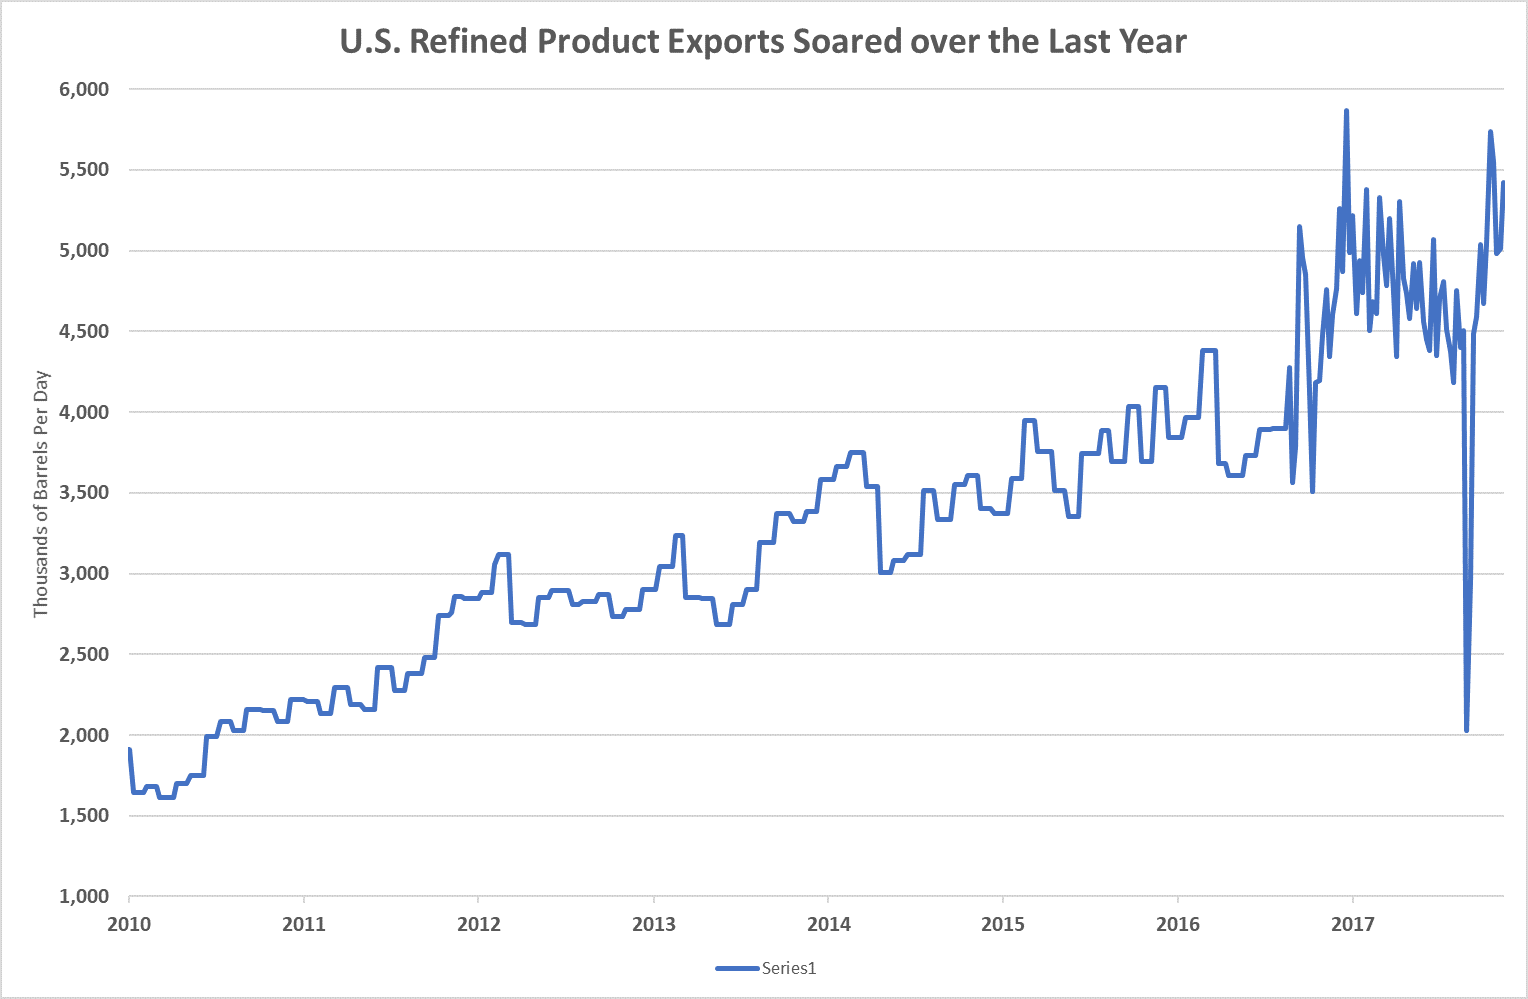 From 2000 through 2010, U.S. exports of refined oil products grew by nearly 160%. But according to the data, we export nearly five times that much now.